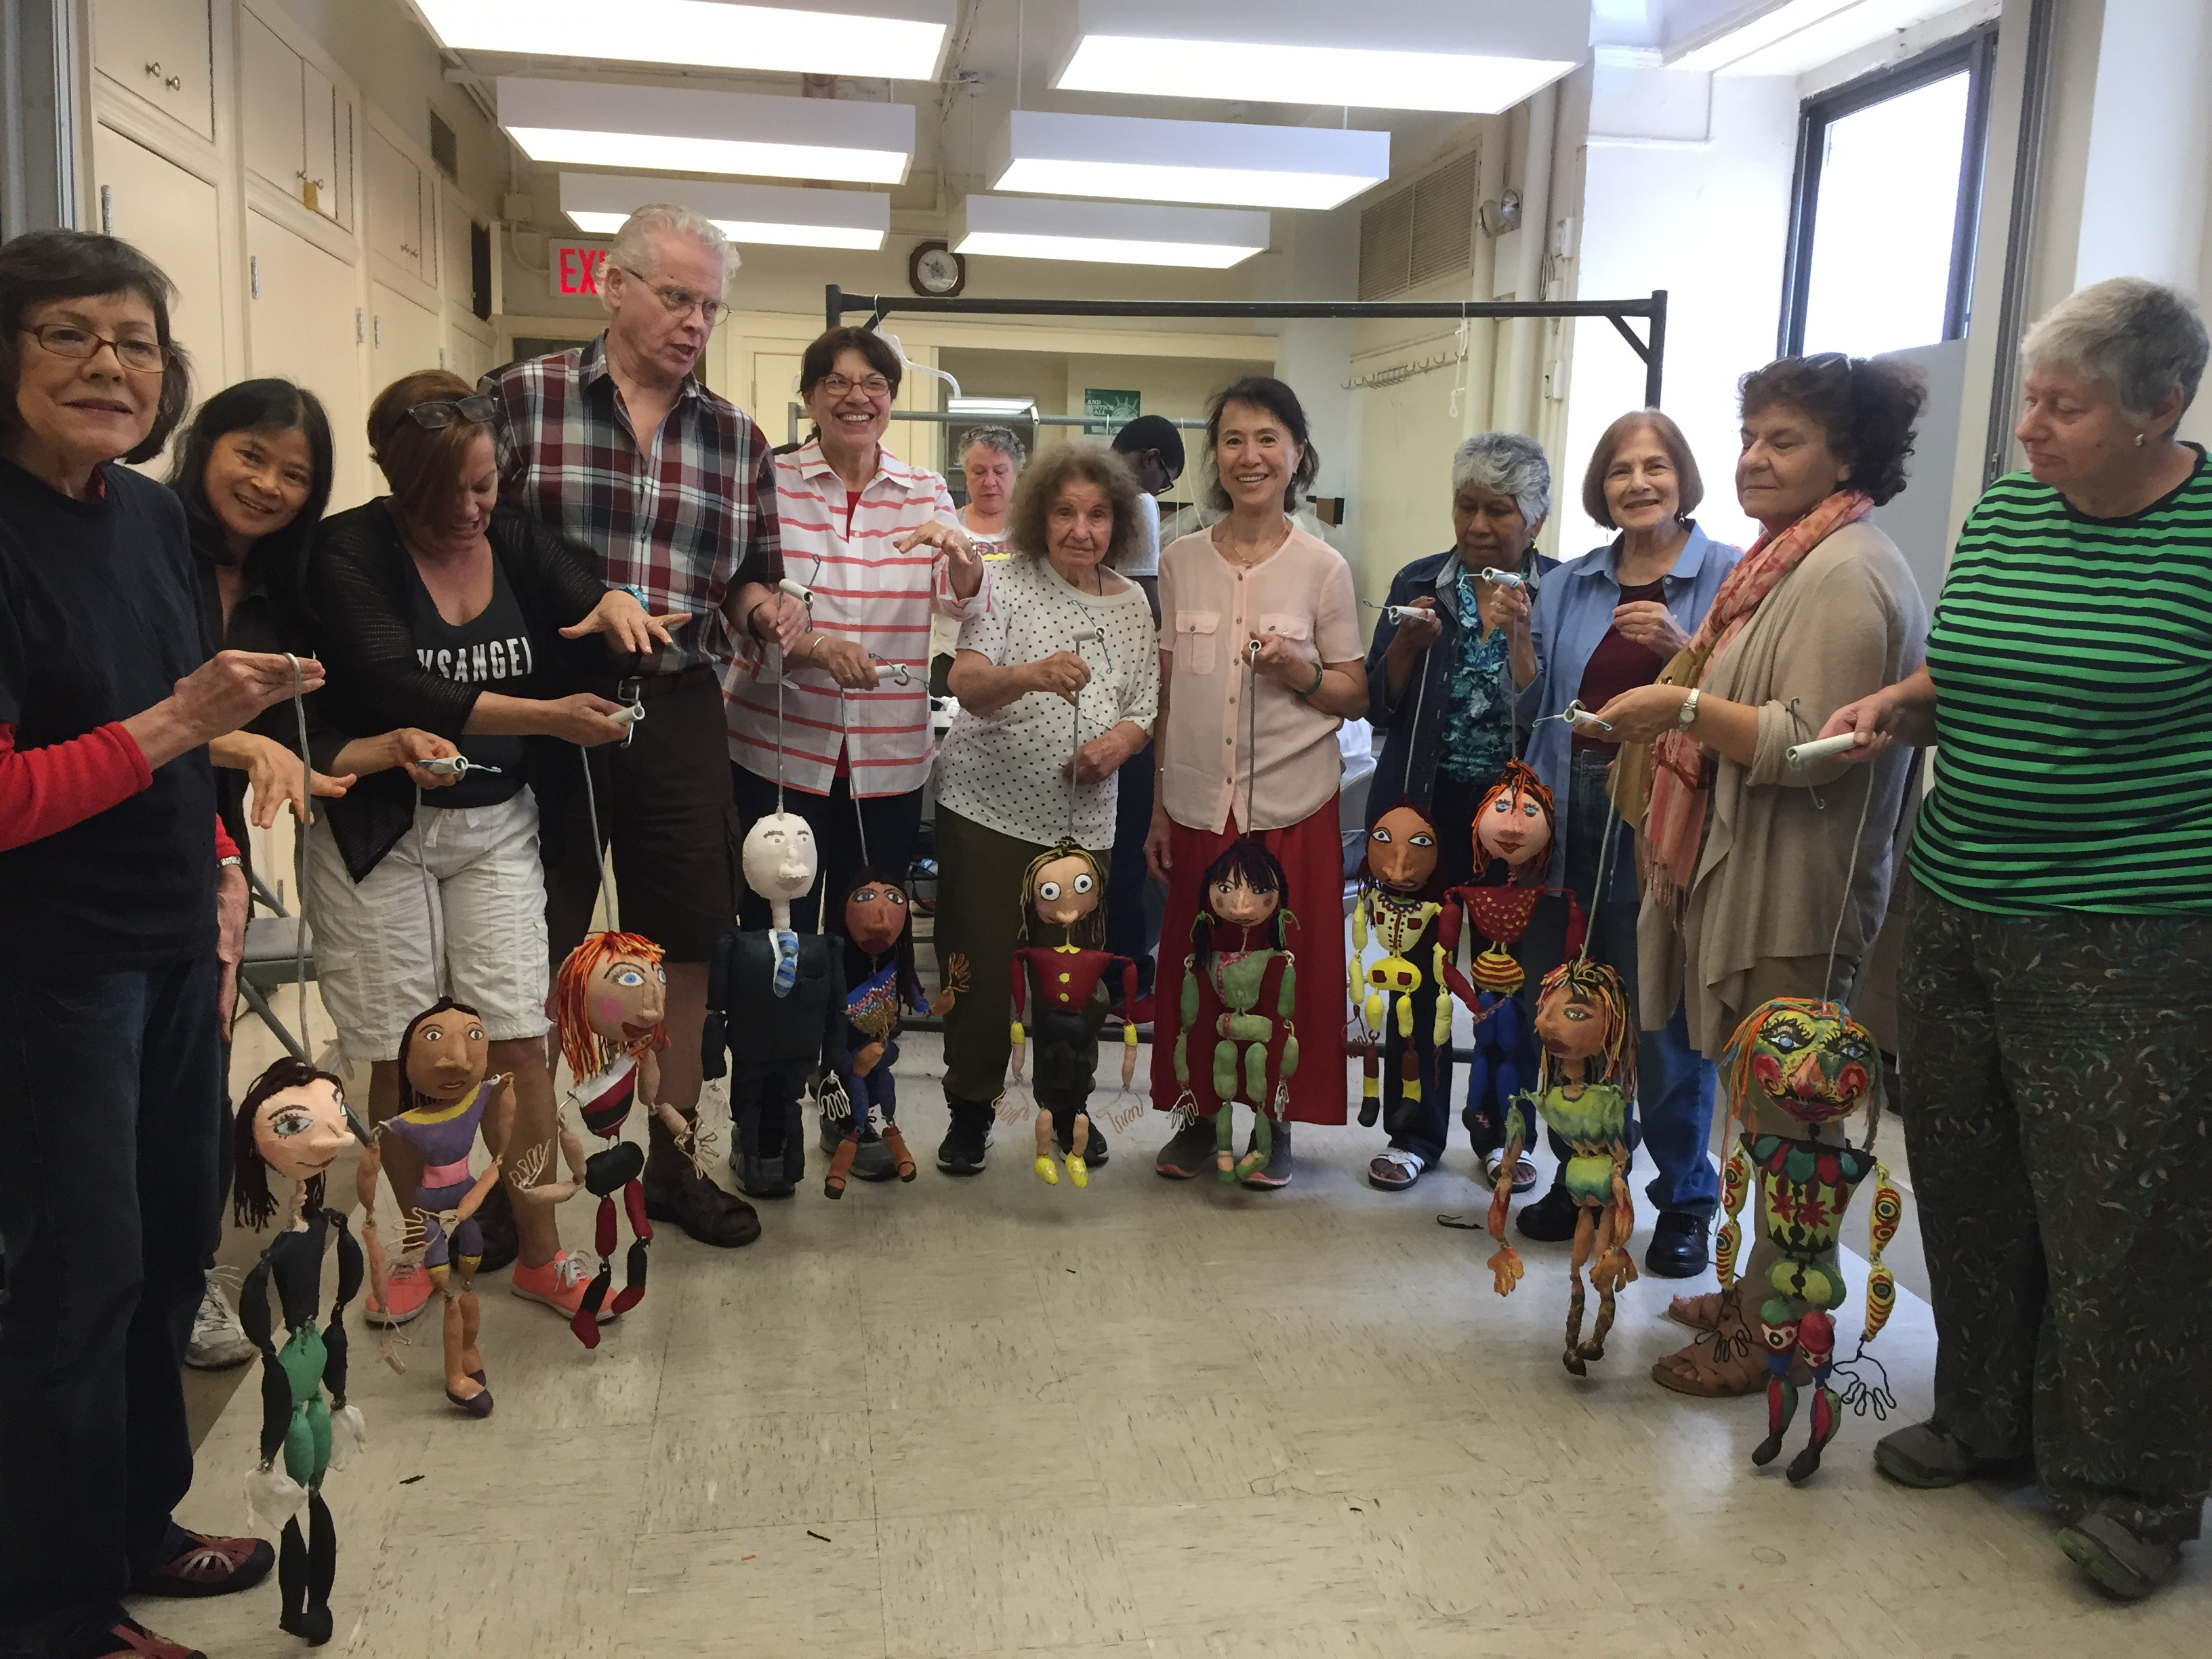 group of people with puppets